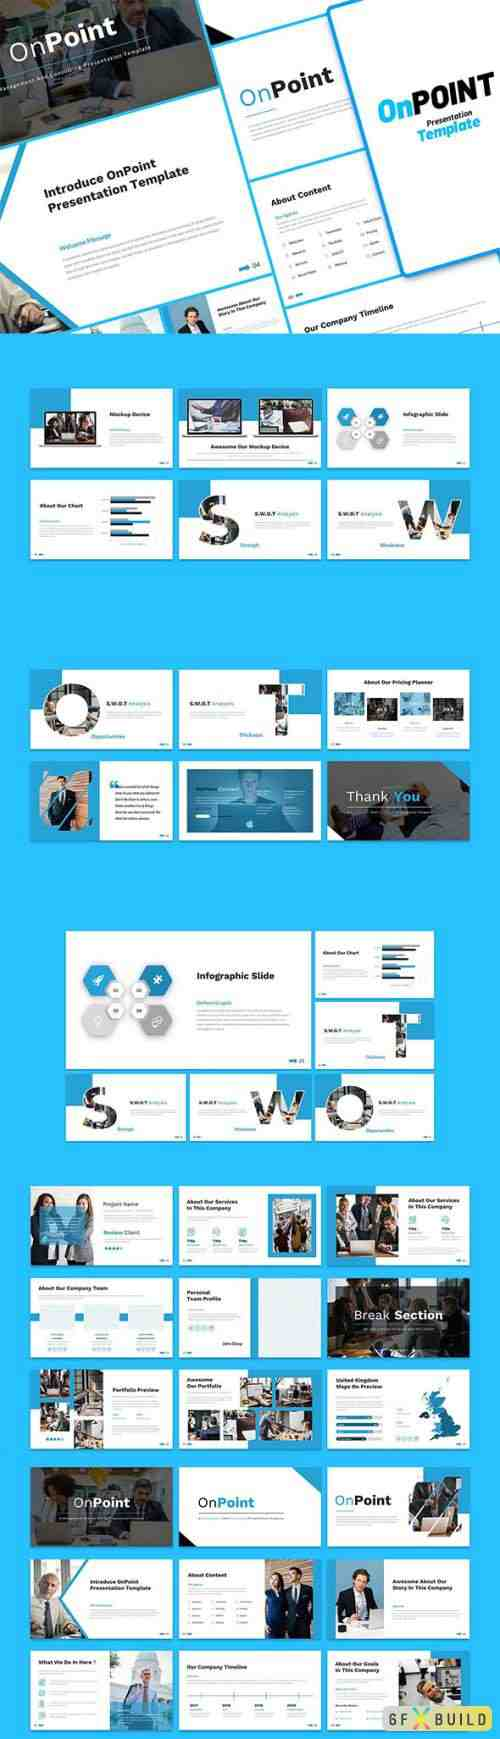 OnPoint Management Consulting Keynote Template